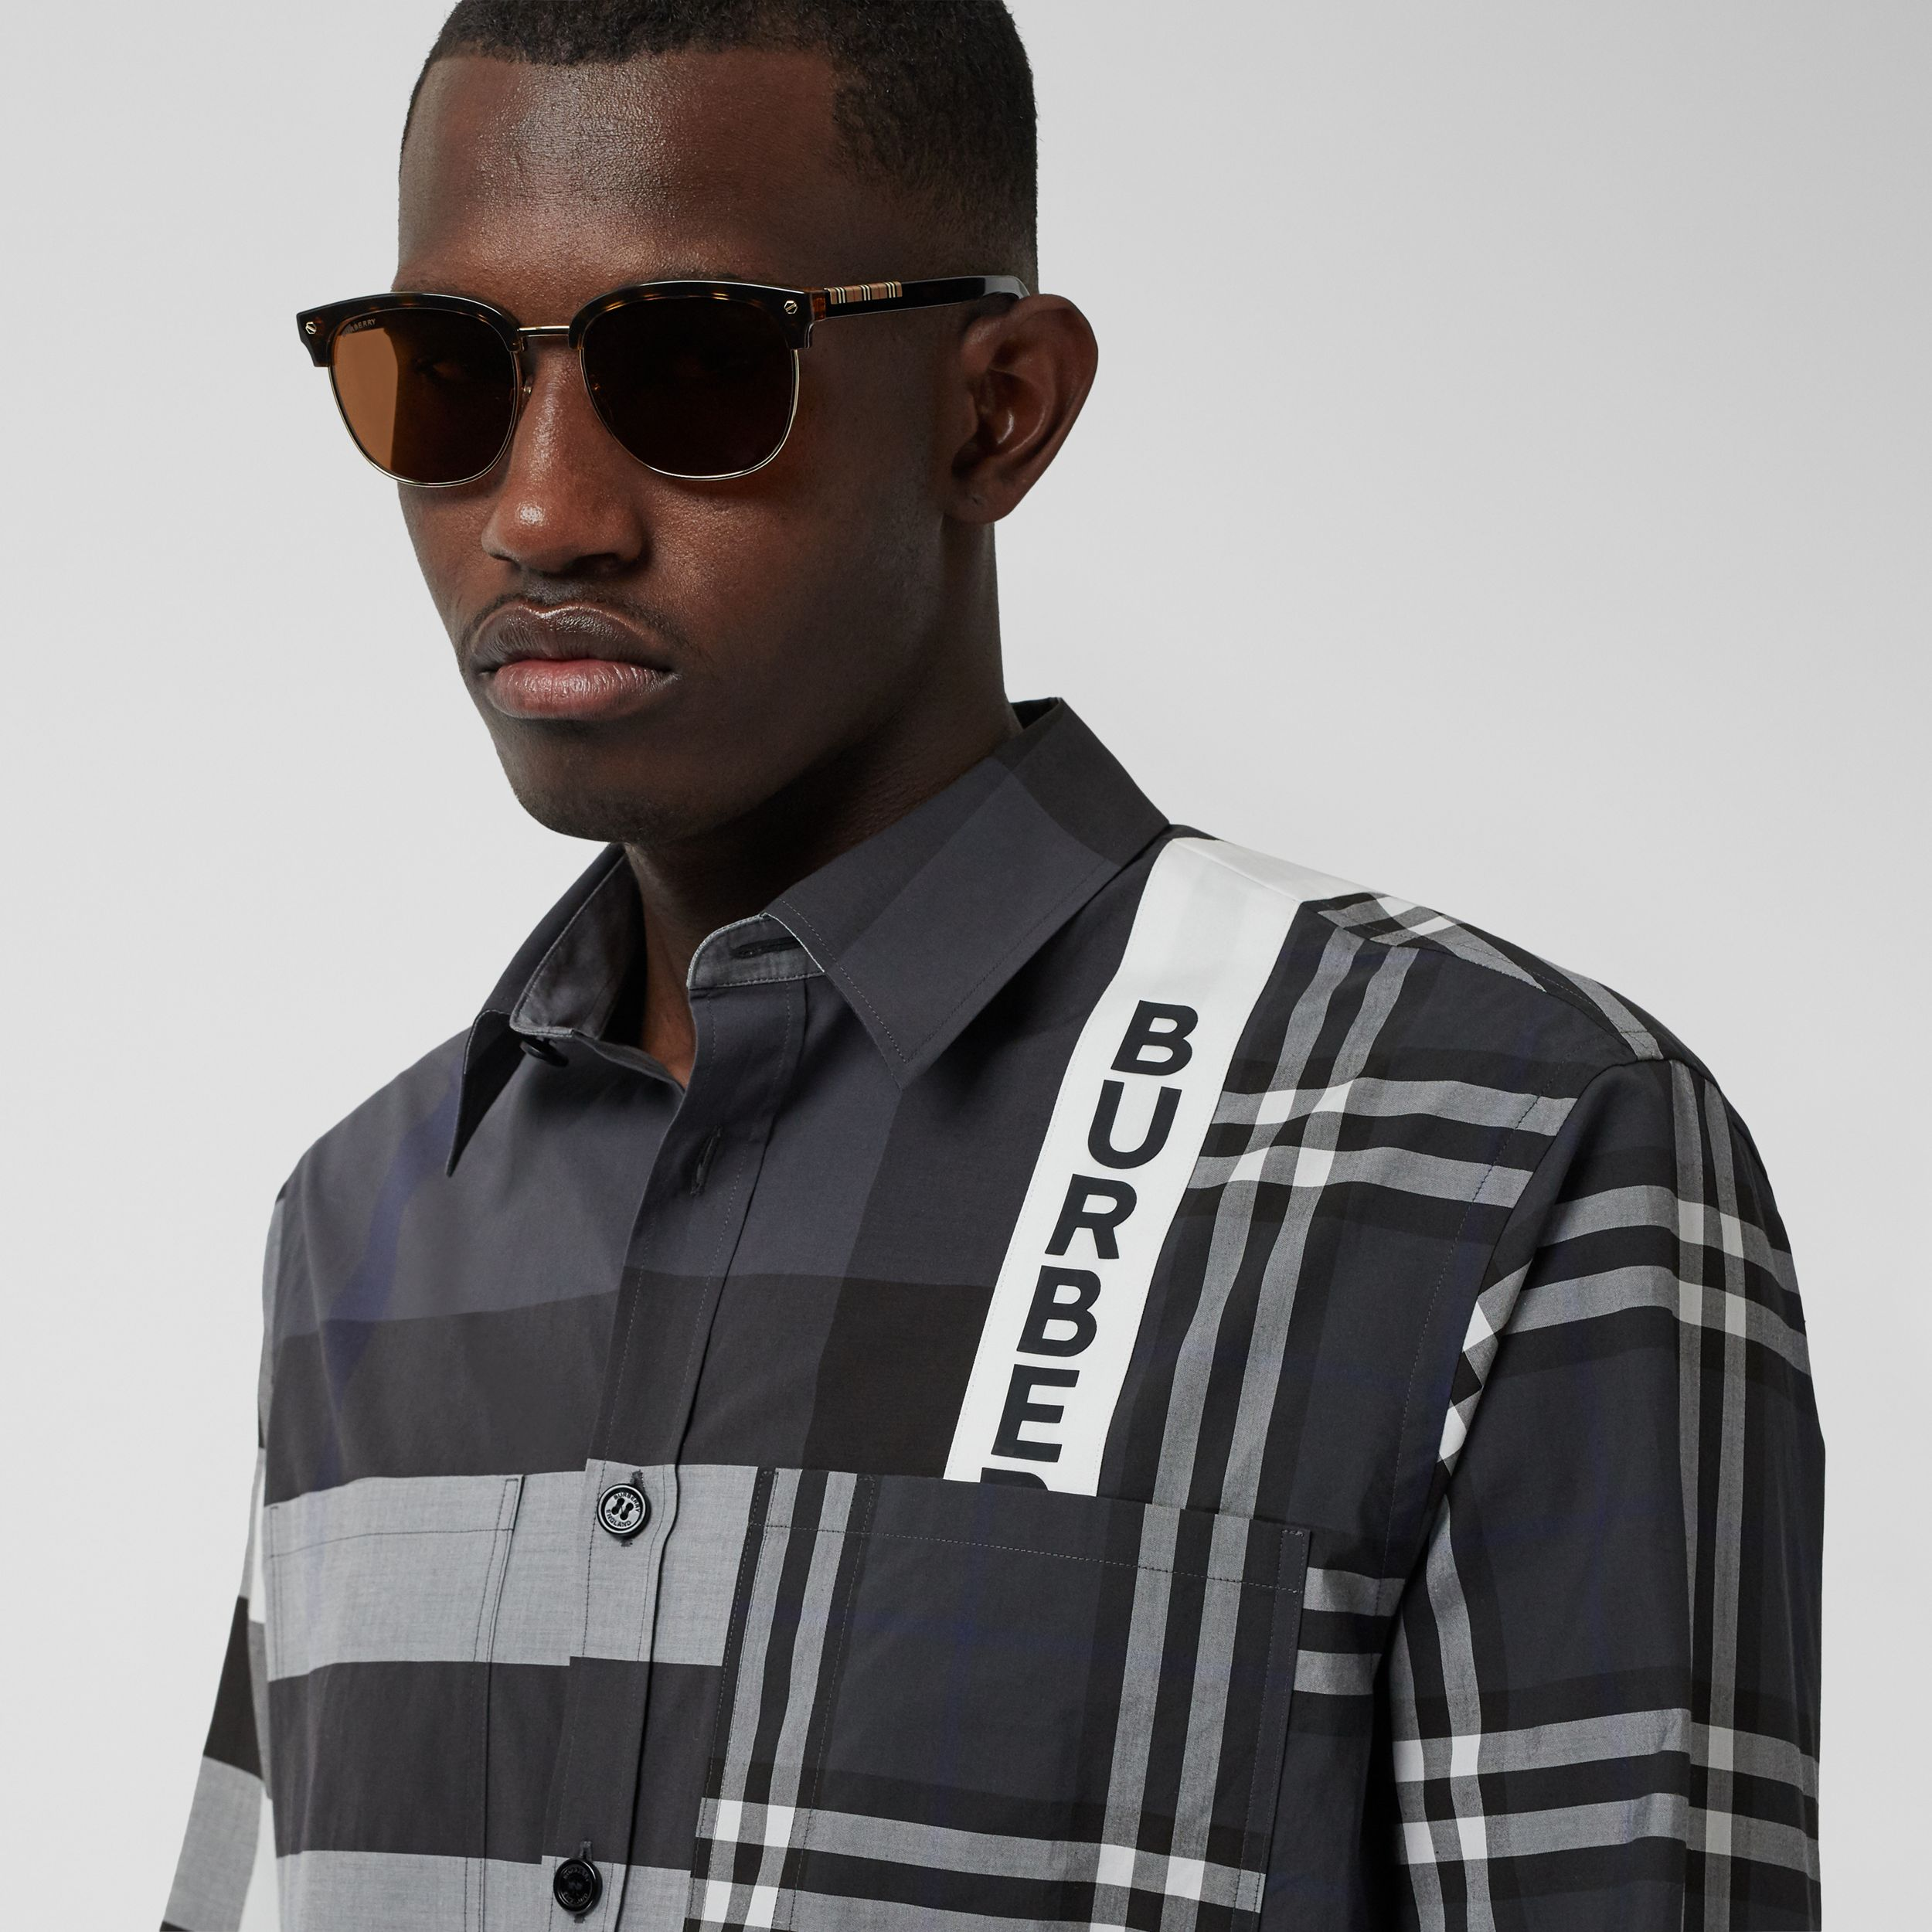 Logo Print Patchwork Check Cotton Oversized Shirt in Dark Pewter - Men | Burberry - 2